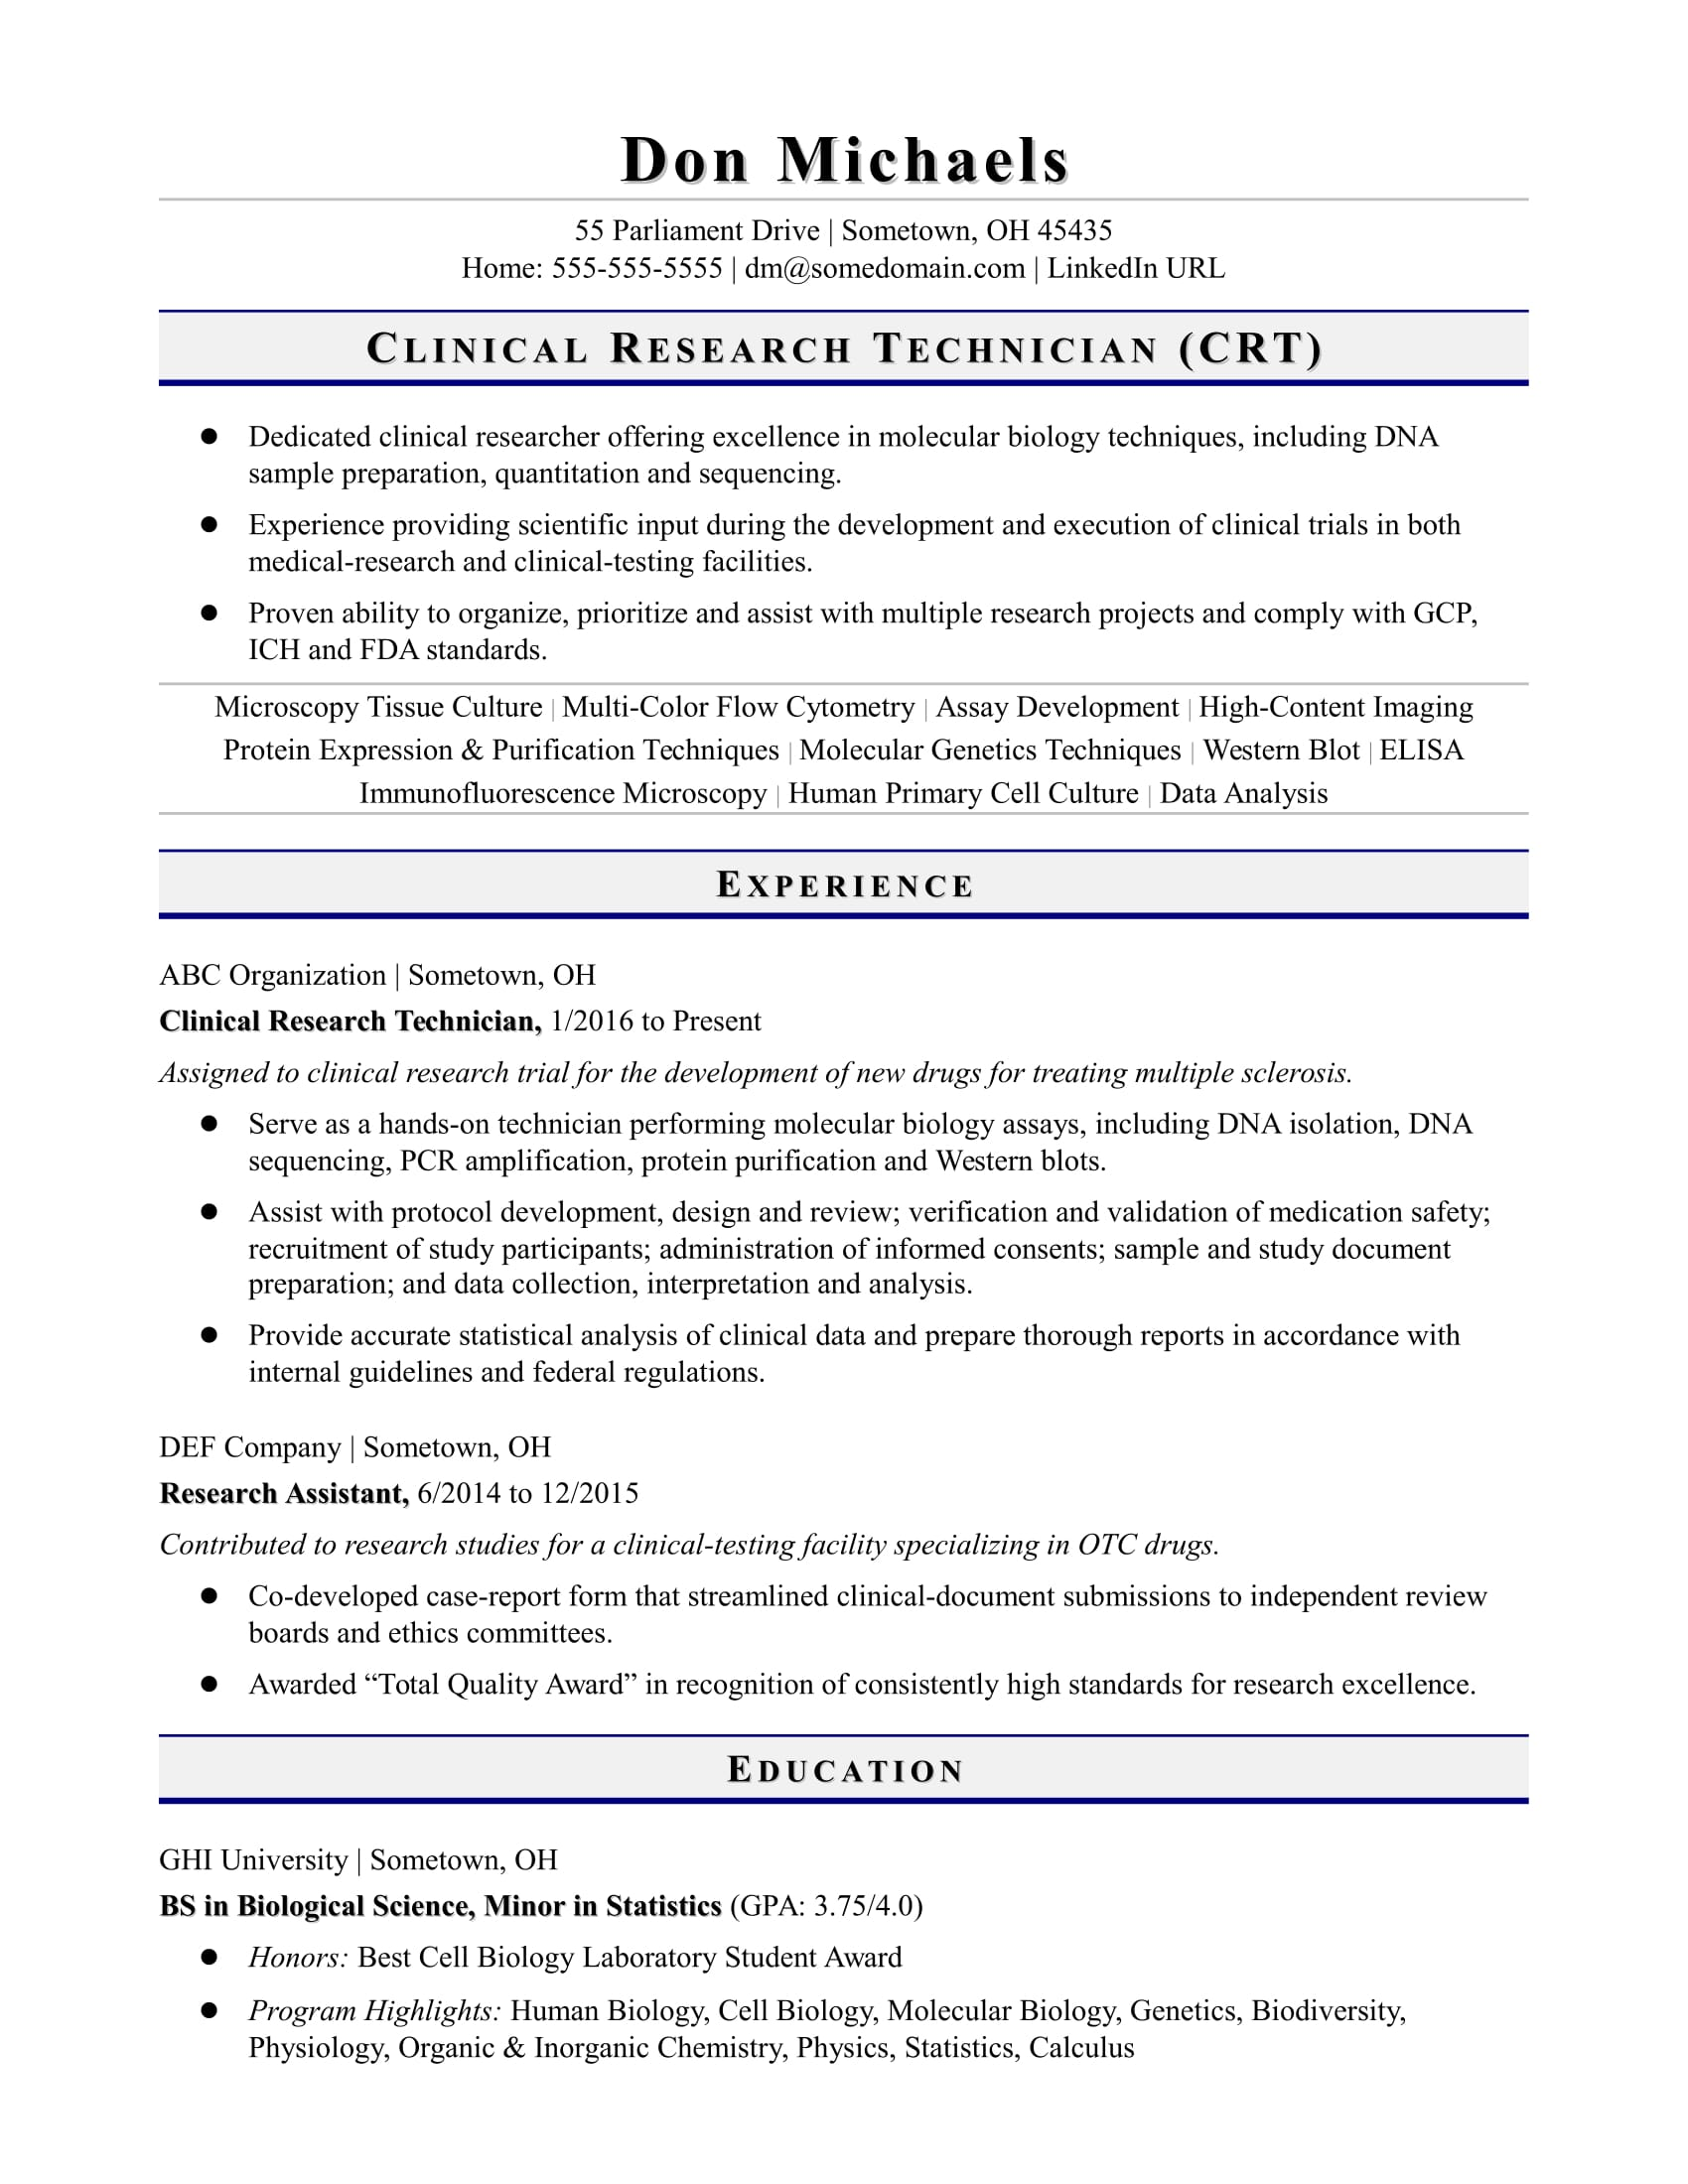 resume summary examples for biology majors